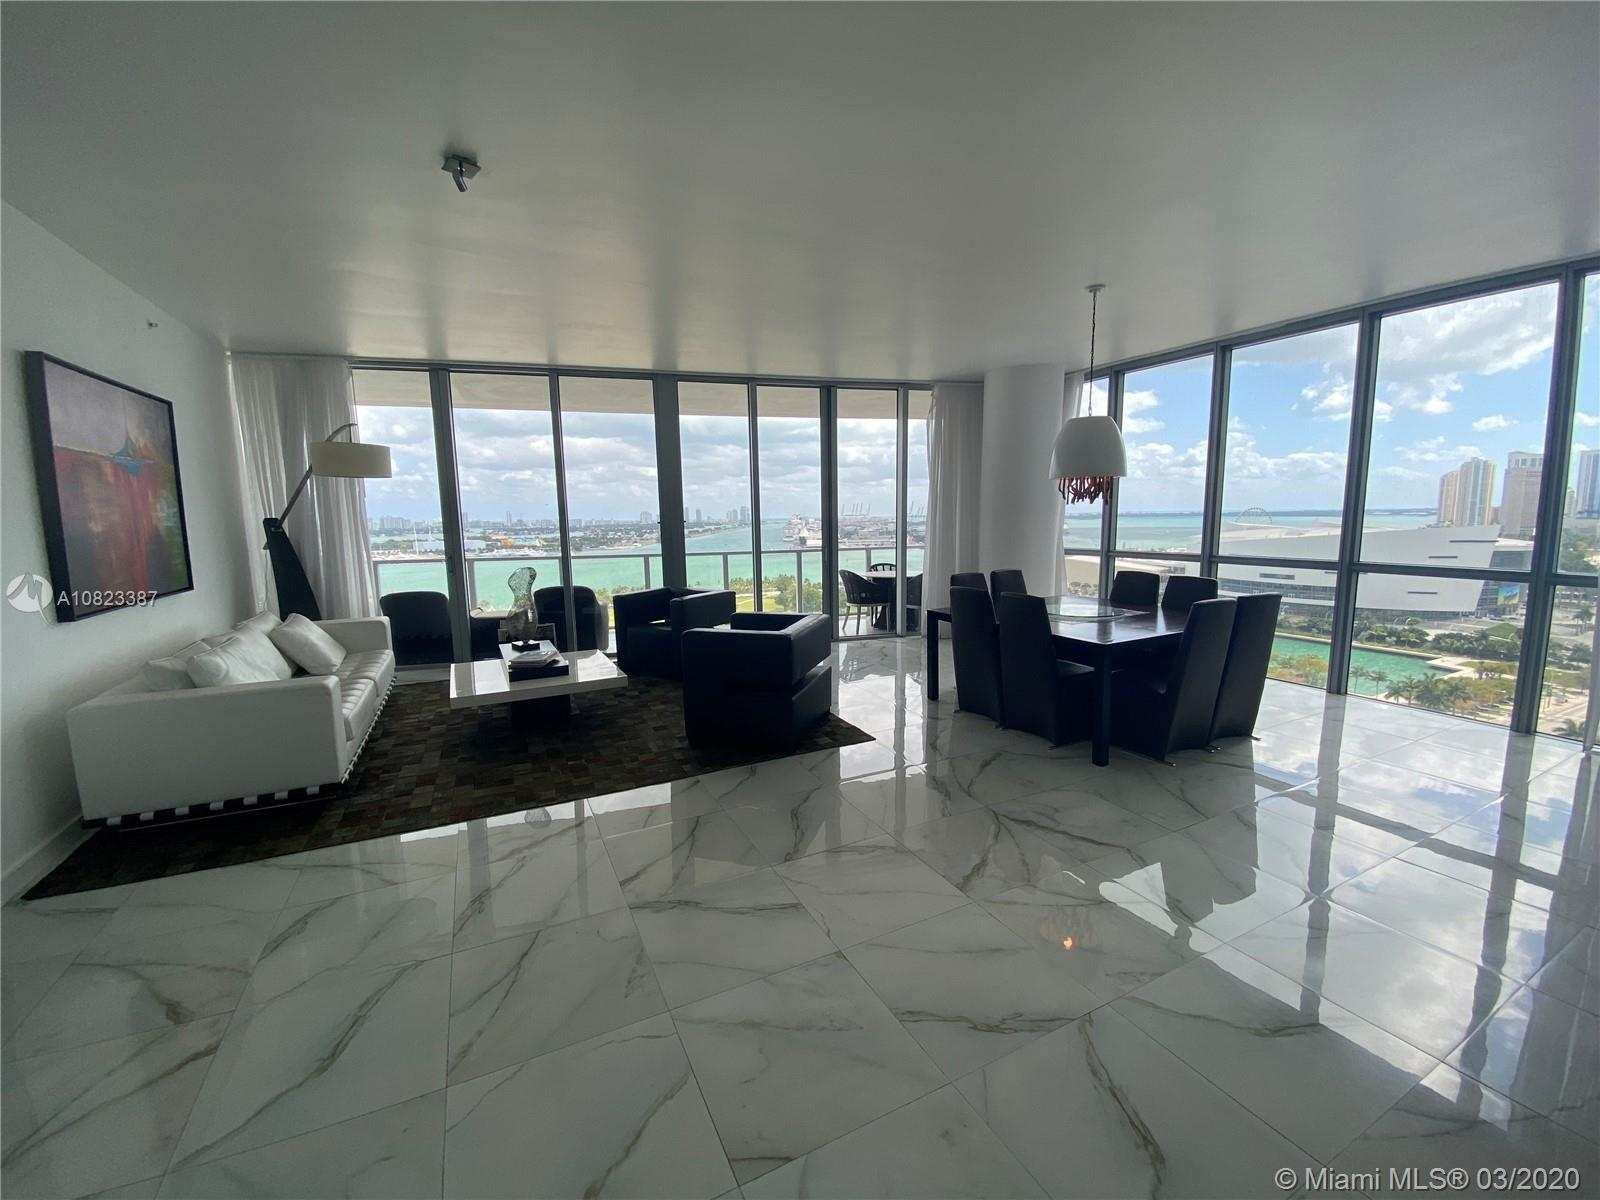 VIEWS! VIEWS! And more GORGEOUS VIEWS! Beautiful corner unit has stunning views of the Miami Skyline